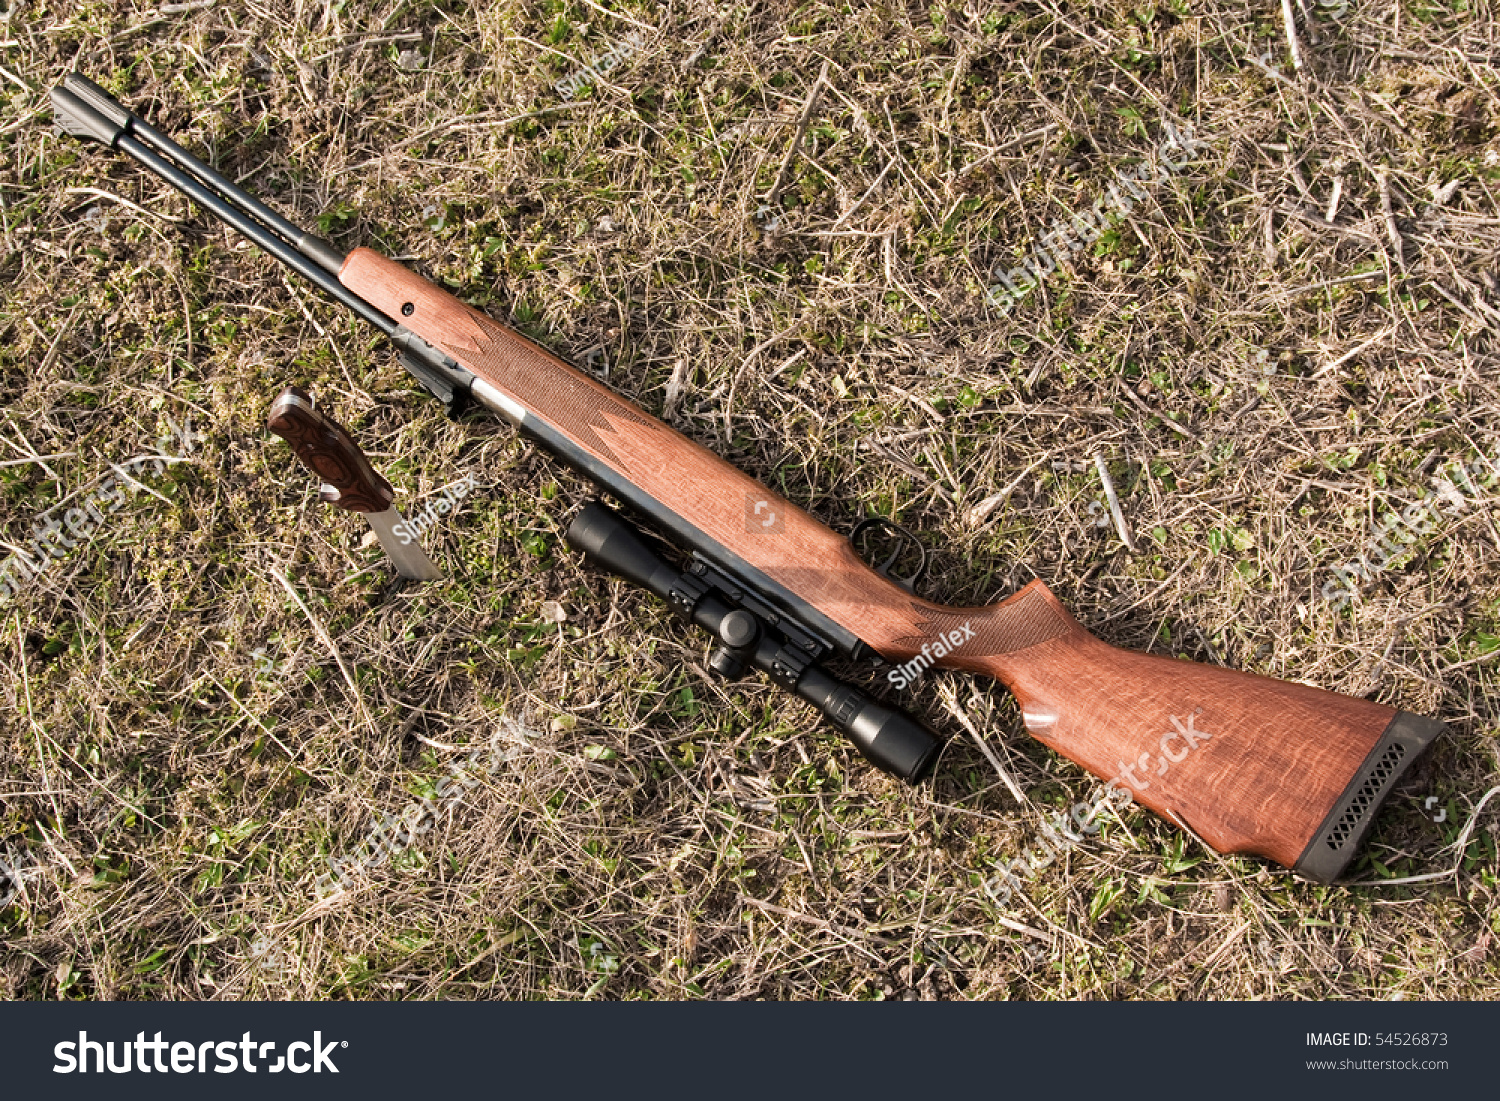 Pneumatic Rifle With A Knife On Ground Stock Photo